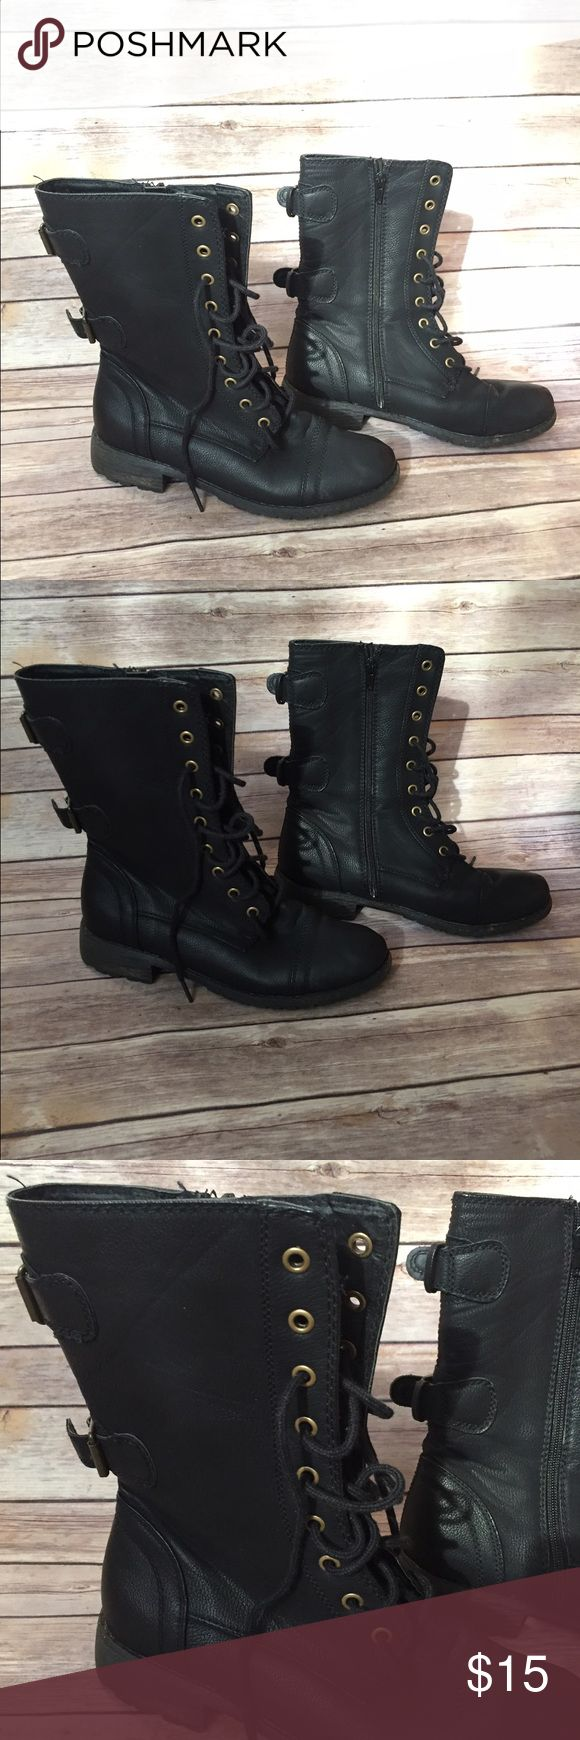 Black combat boots in good shape Had these for a few years but didn't wear them much. In pretty good condition. Most likely not real leather but the quality is good Shoes Combat & Moto Boots